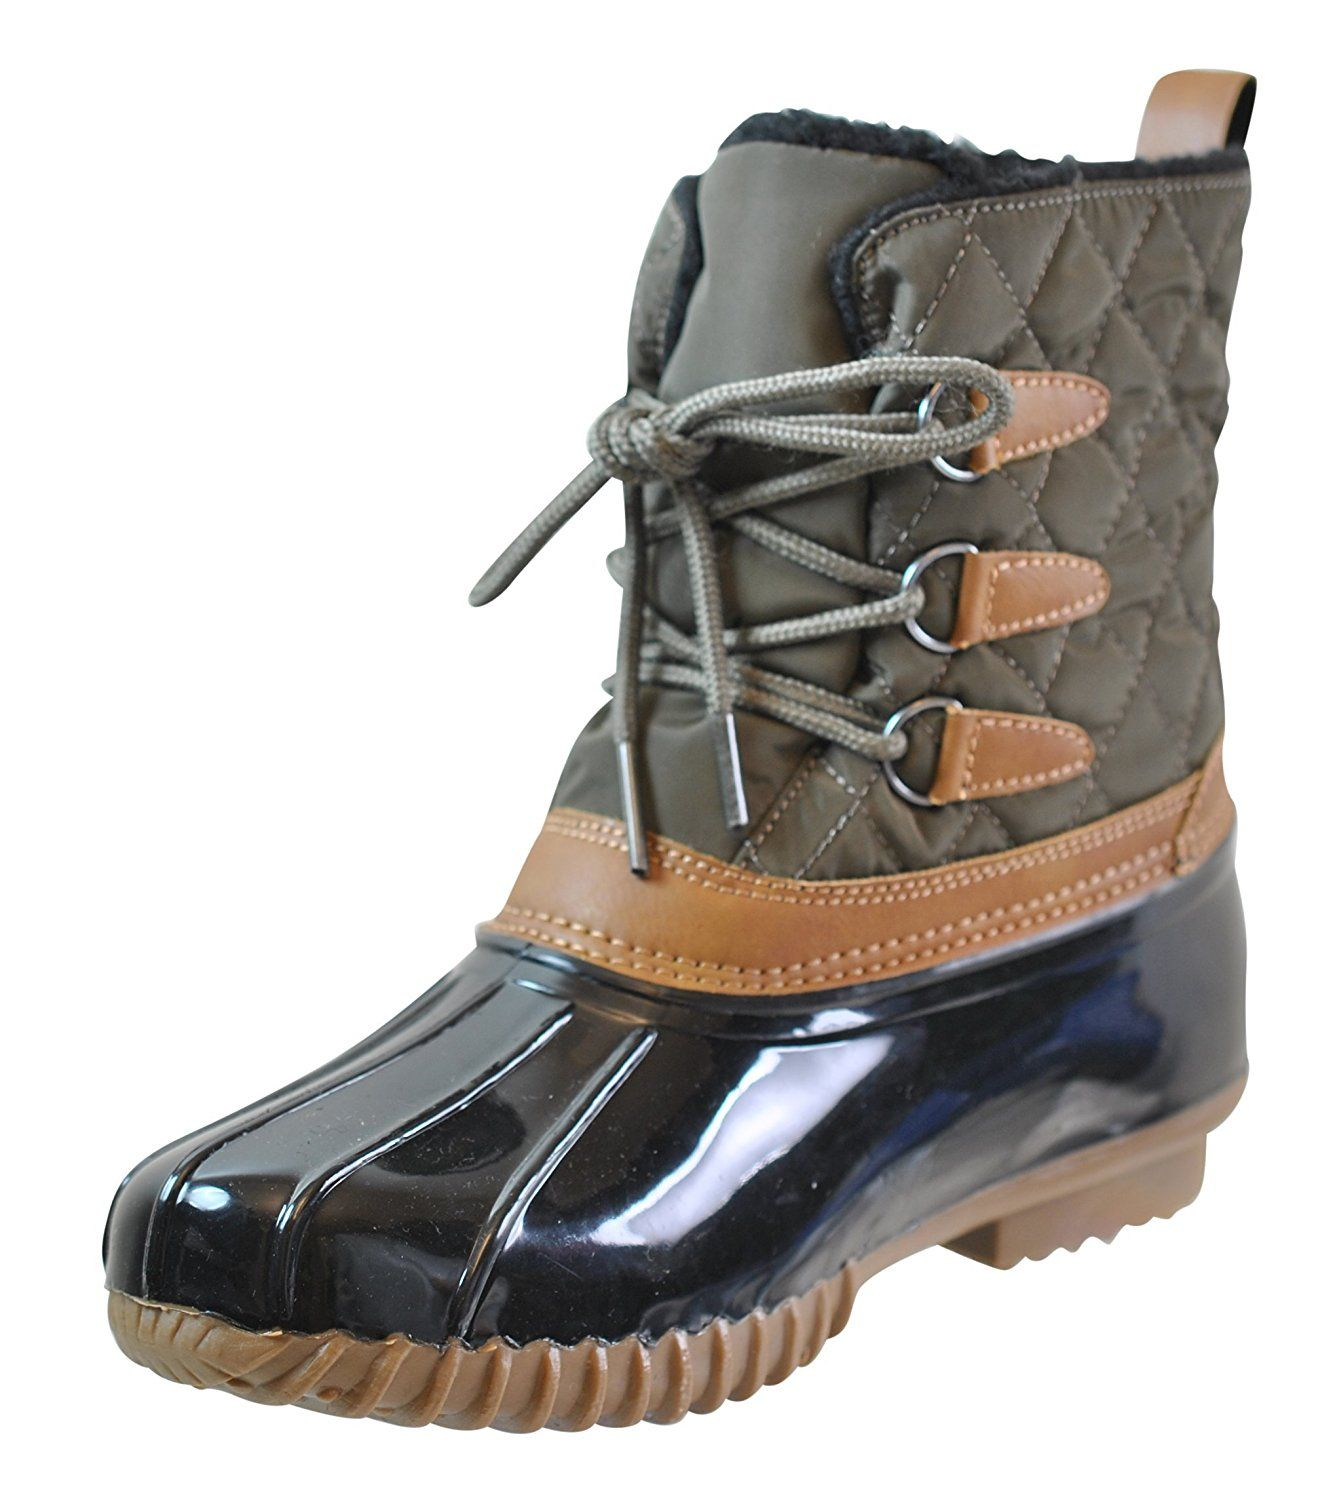 2116ade5635e Sporto Women s Lucille Winter Boot   Review more details here   Women s  snow boots